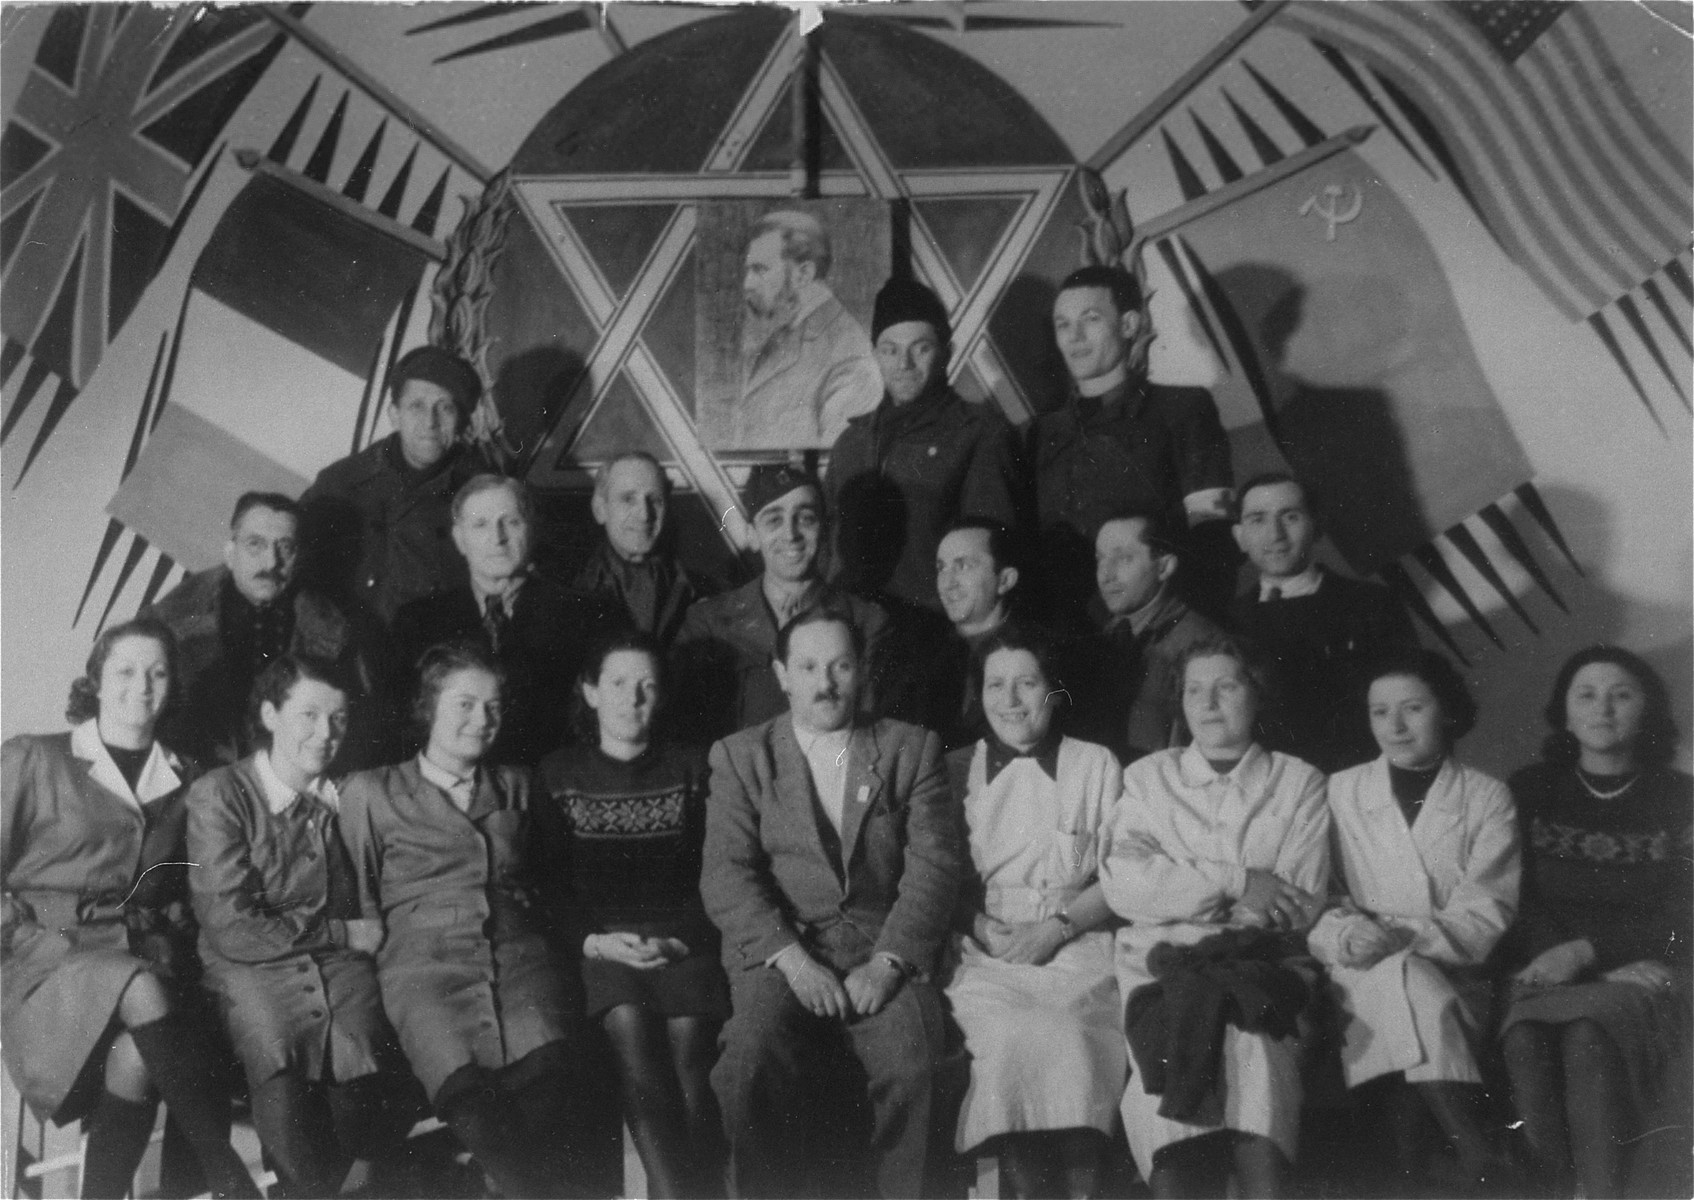 Portrait of a Zionist group at a DP camp in Vienna.